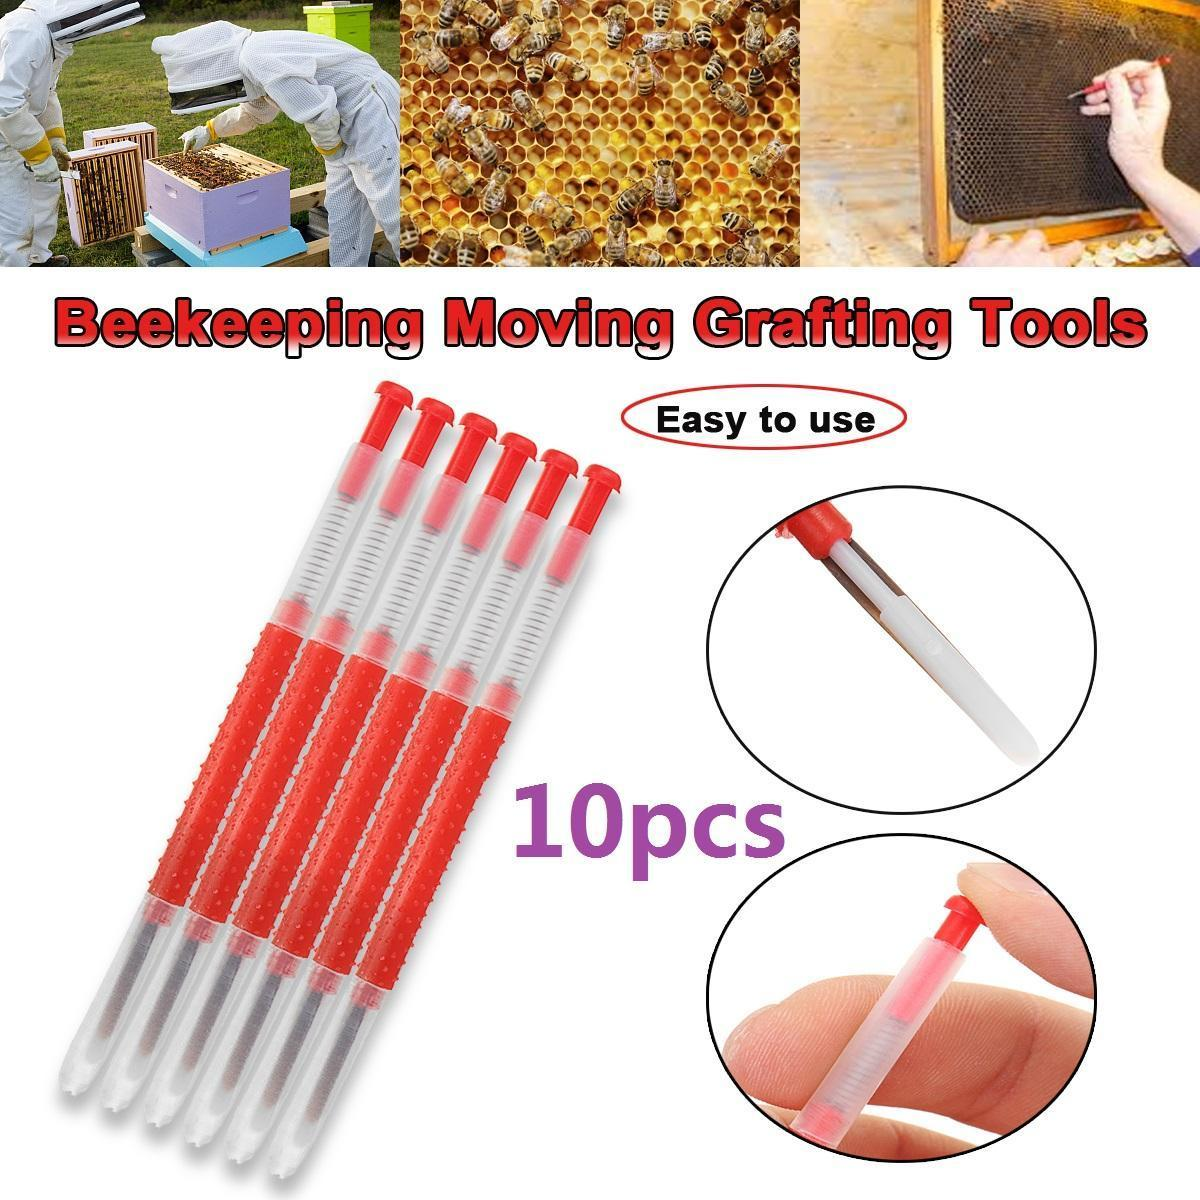 Beekeeping Chinese Queen Rearing Retractable End Grafting Tools x 2